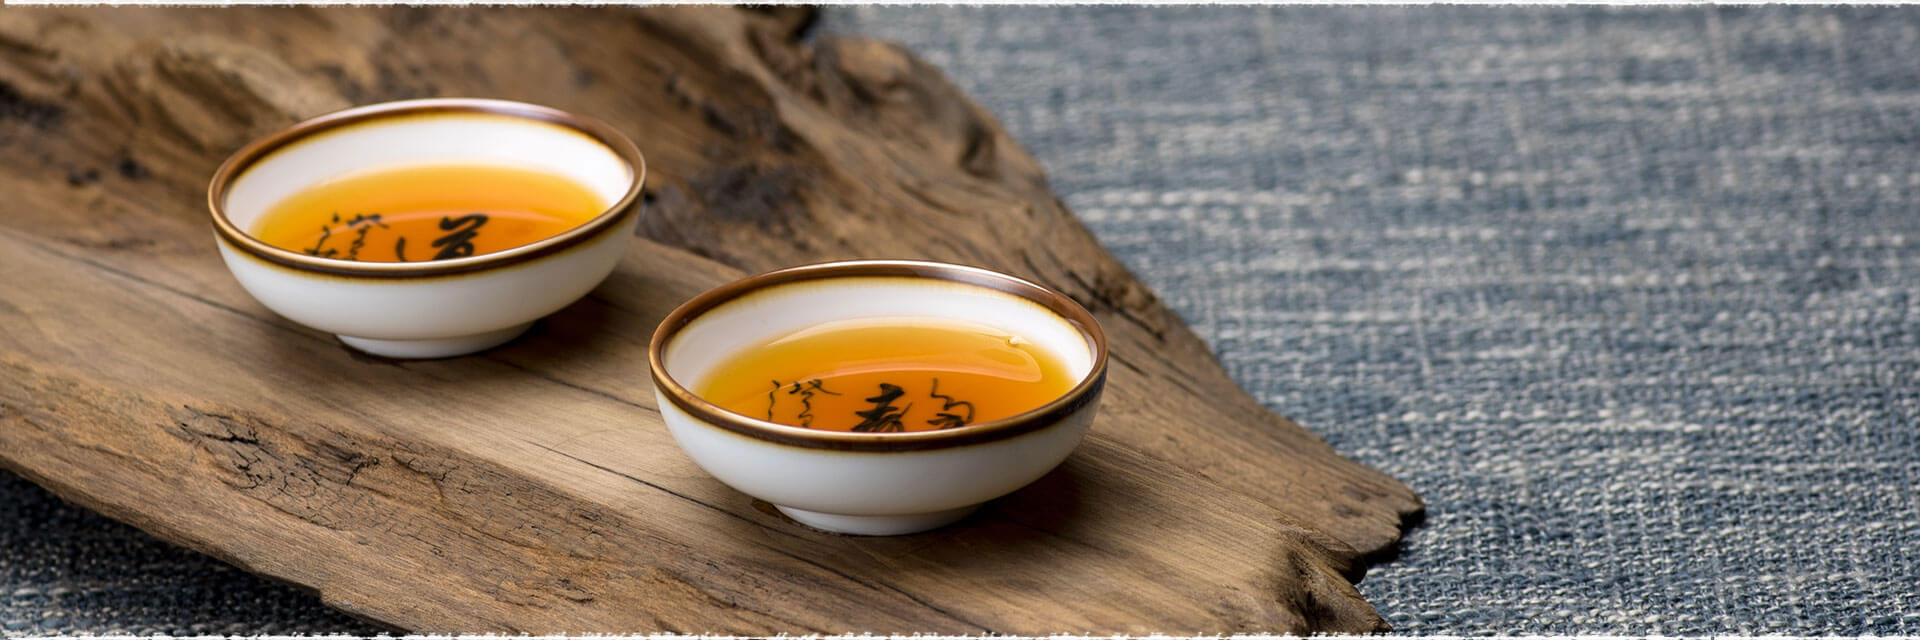 Other uses of black tea